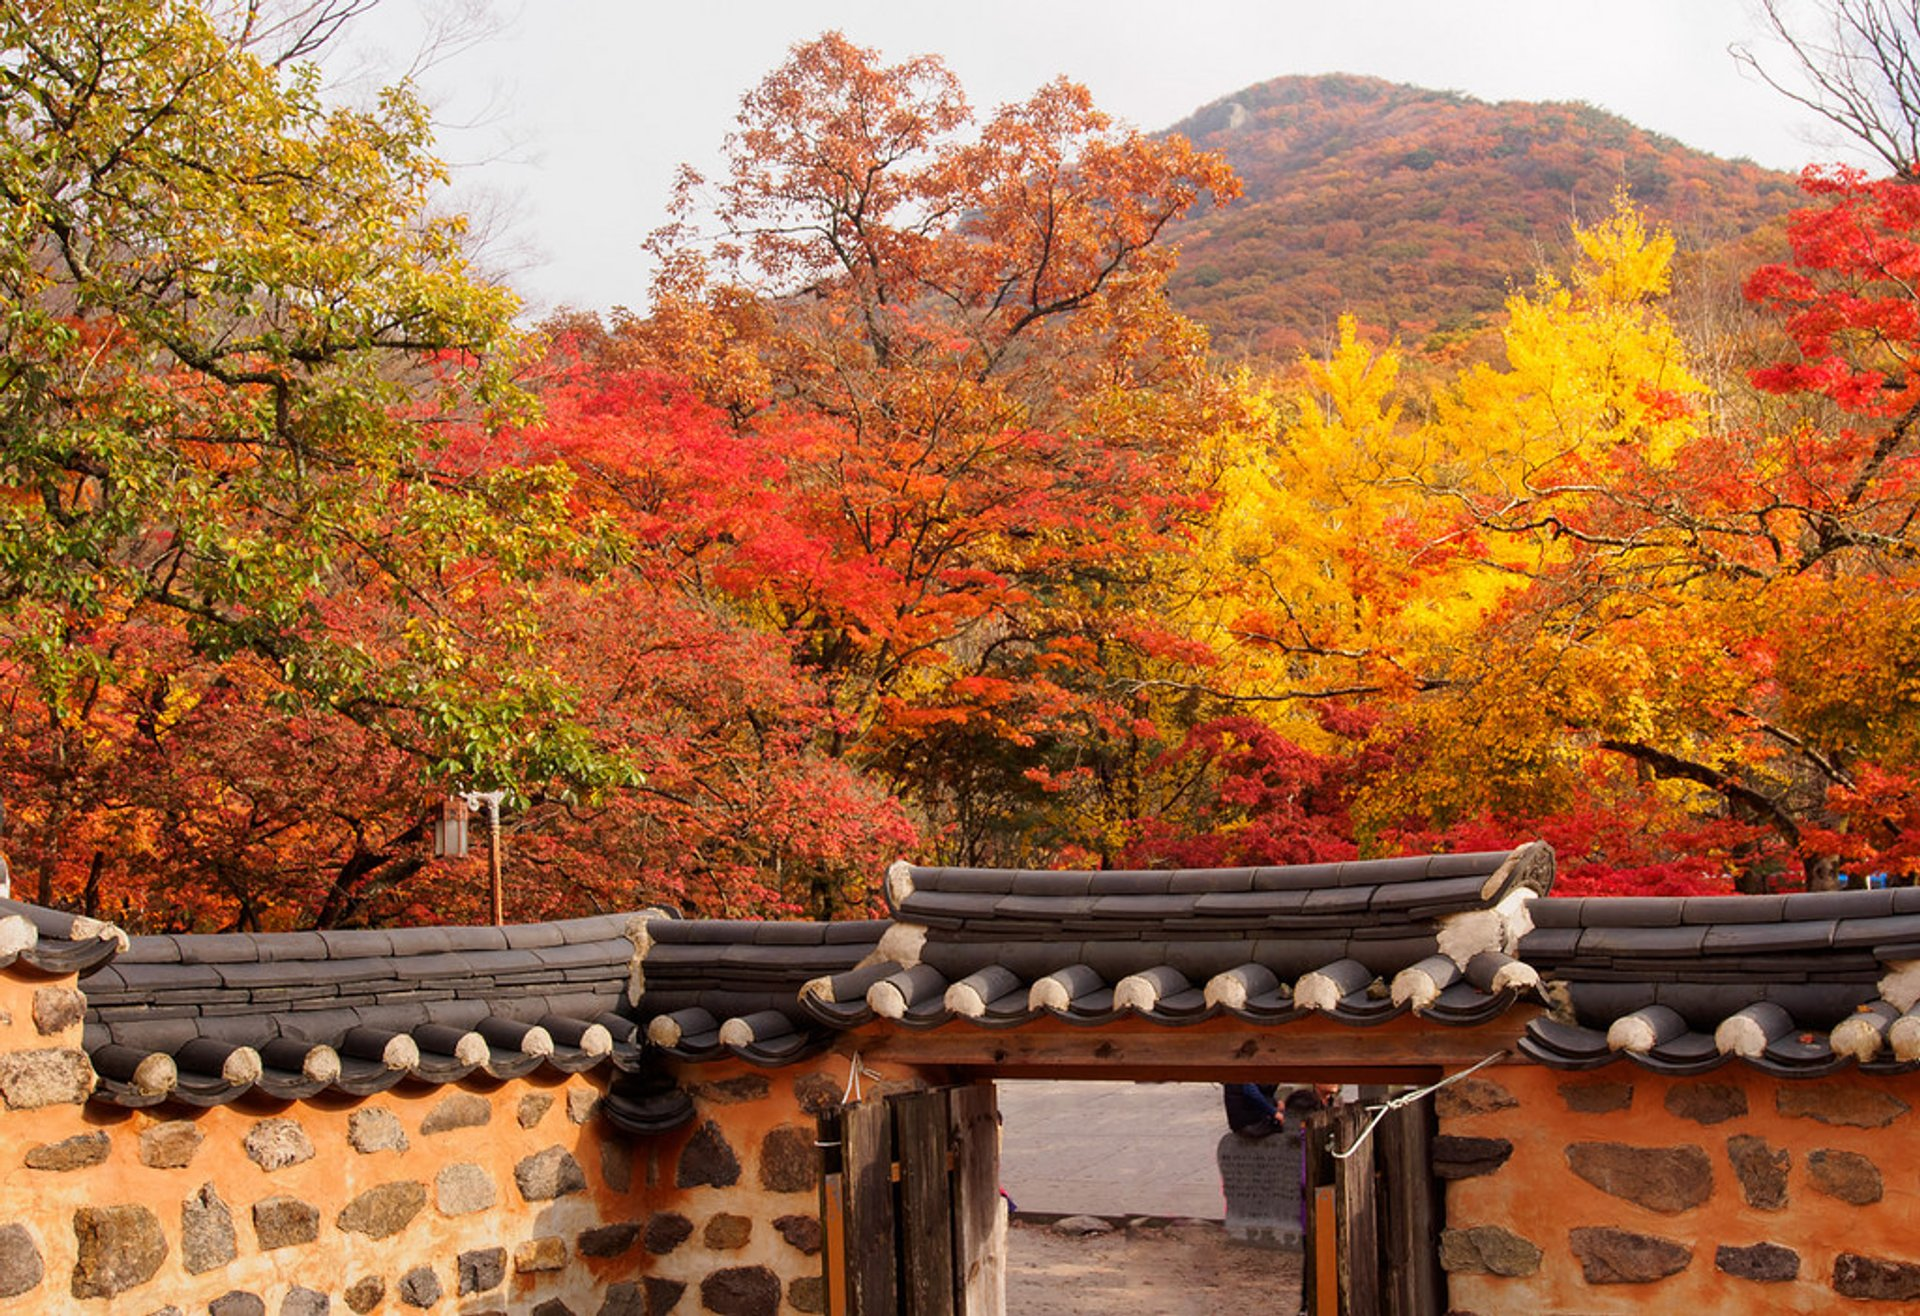 Autumn in South Korea 2020 - Best Time